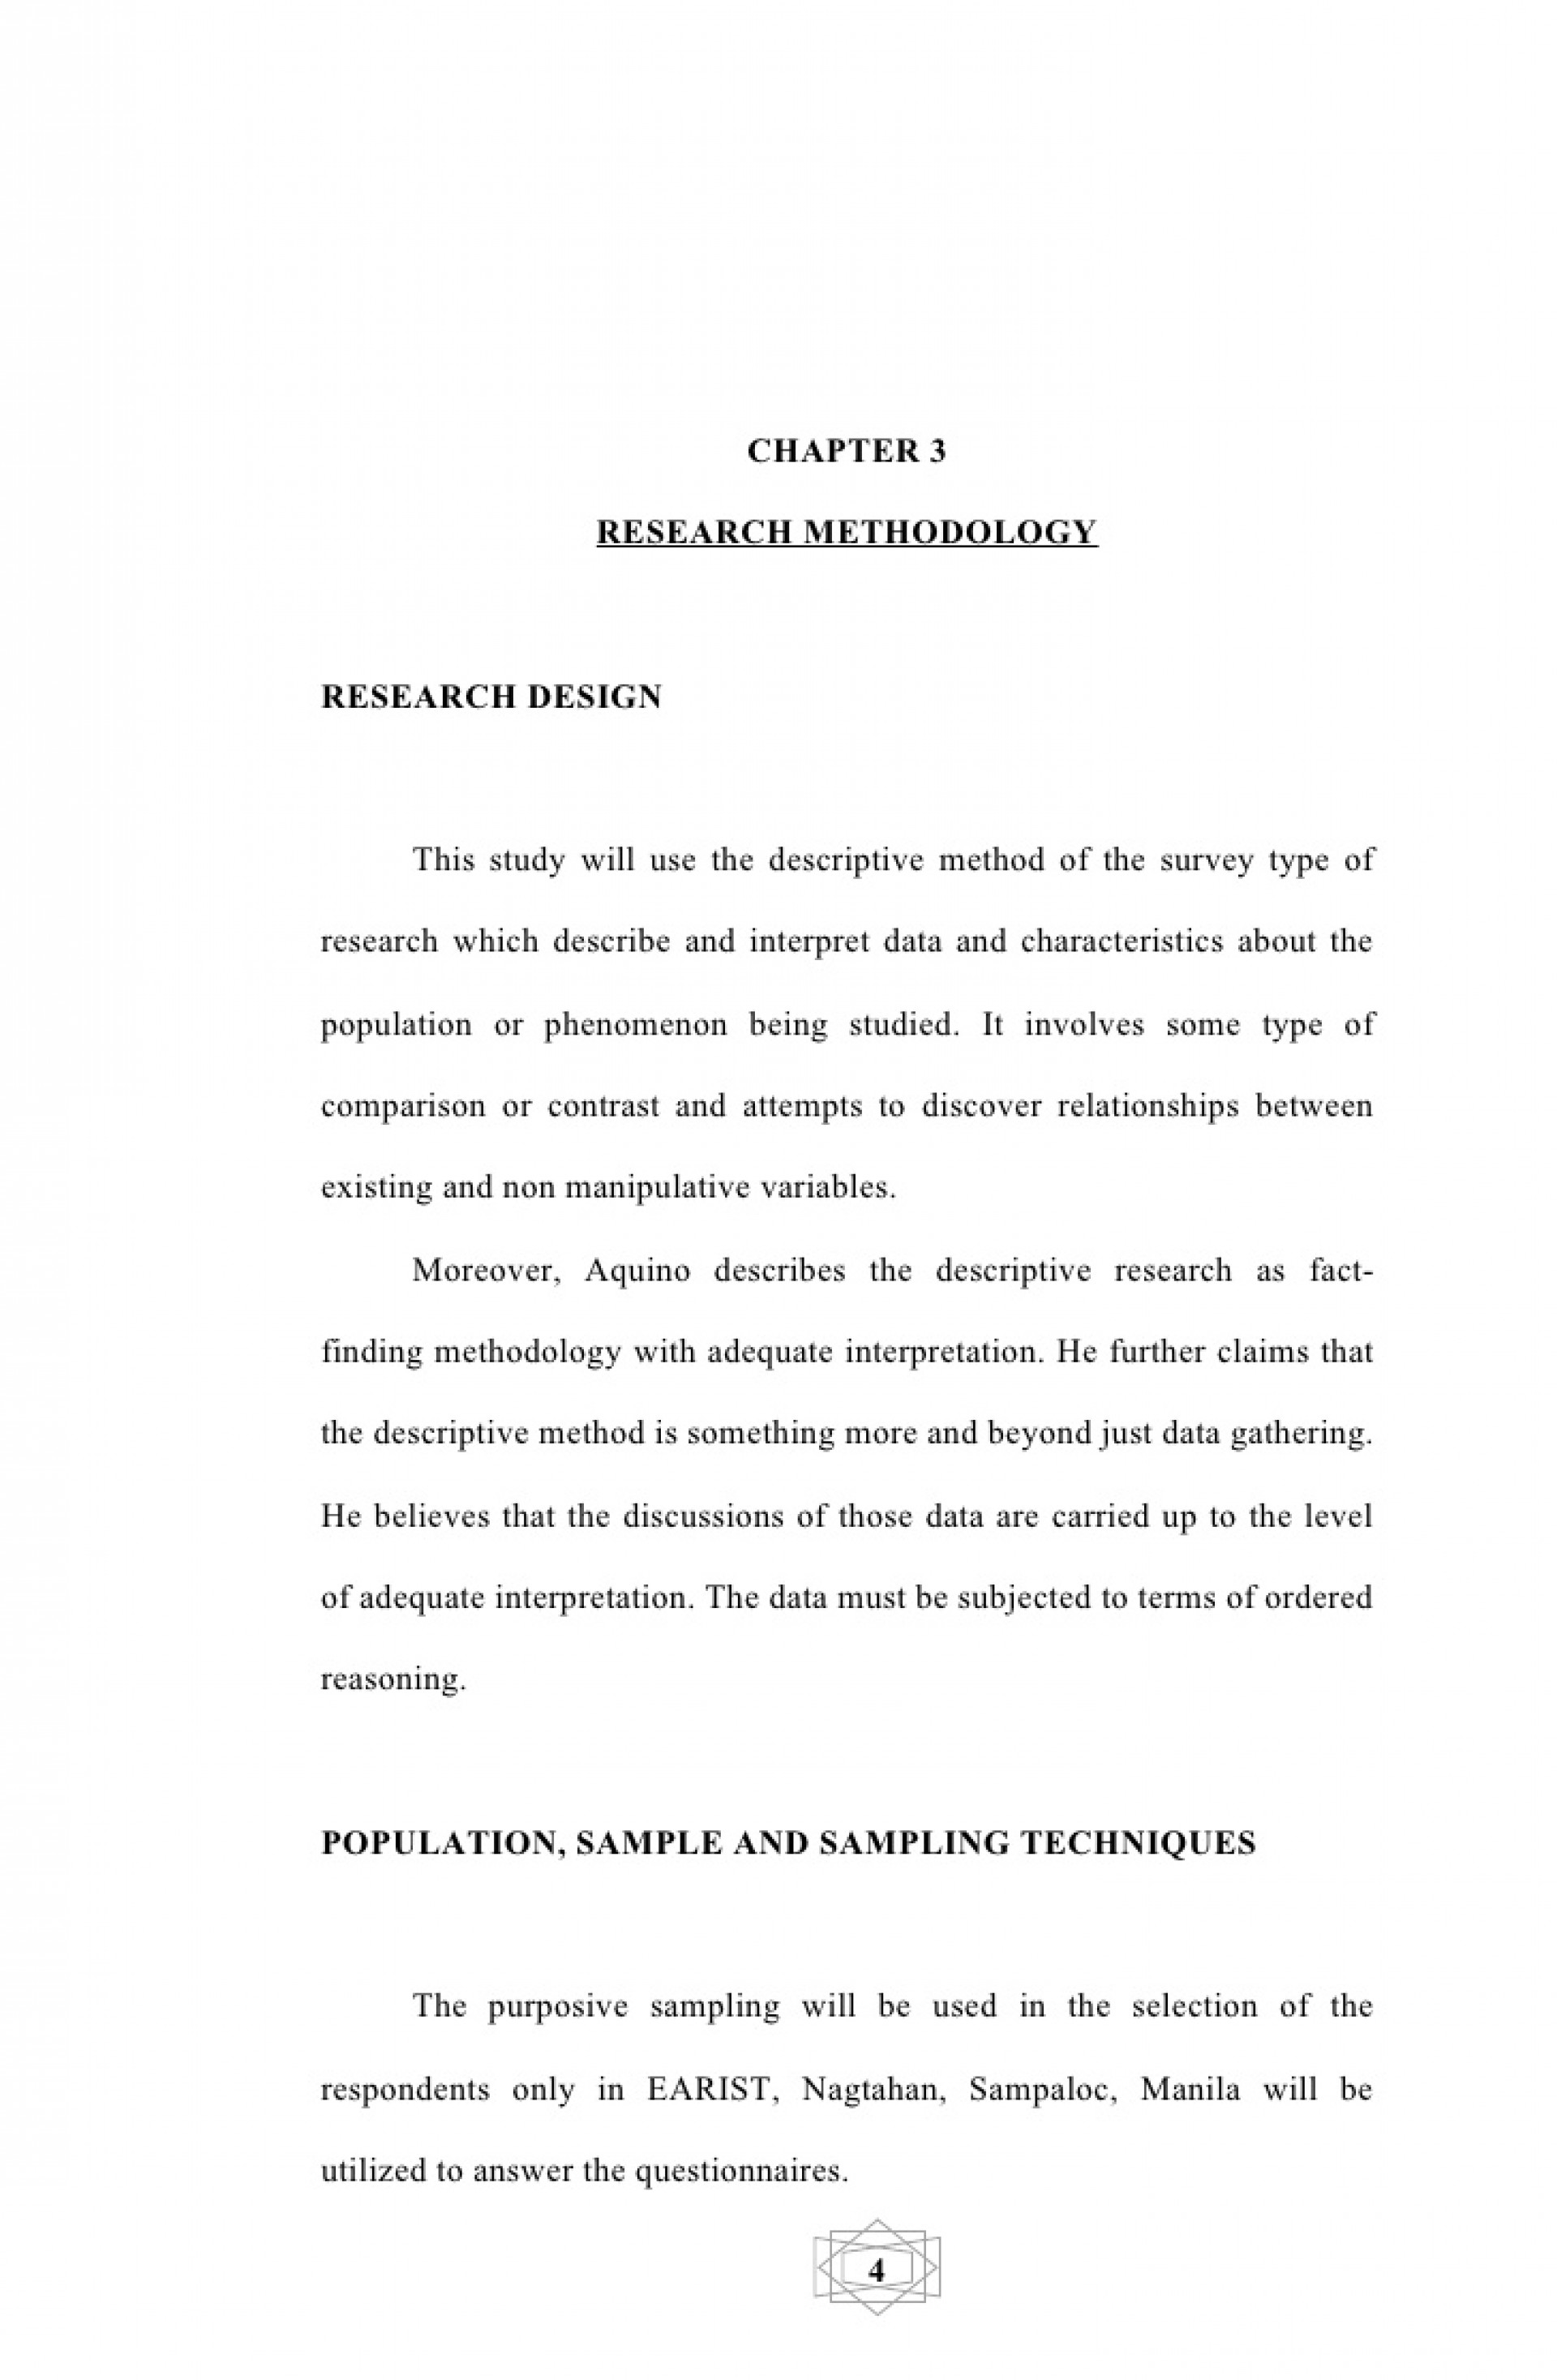 004 Thesis My Documentation Research Paper Experimental Sample Pdf Top Philippines 1920